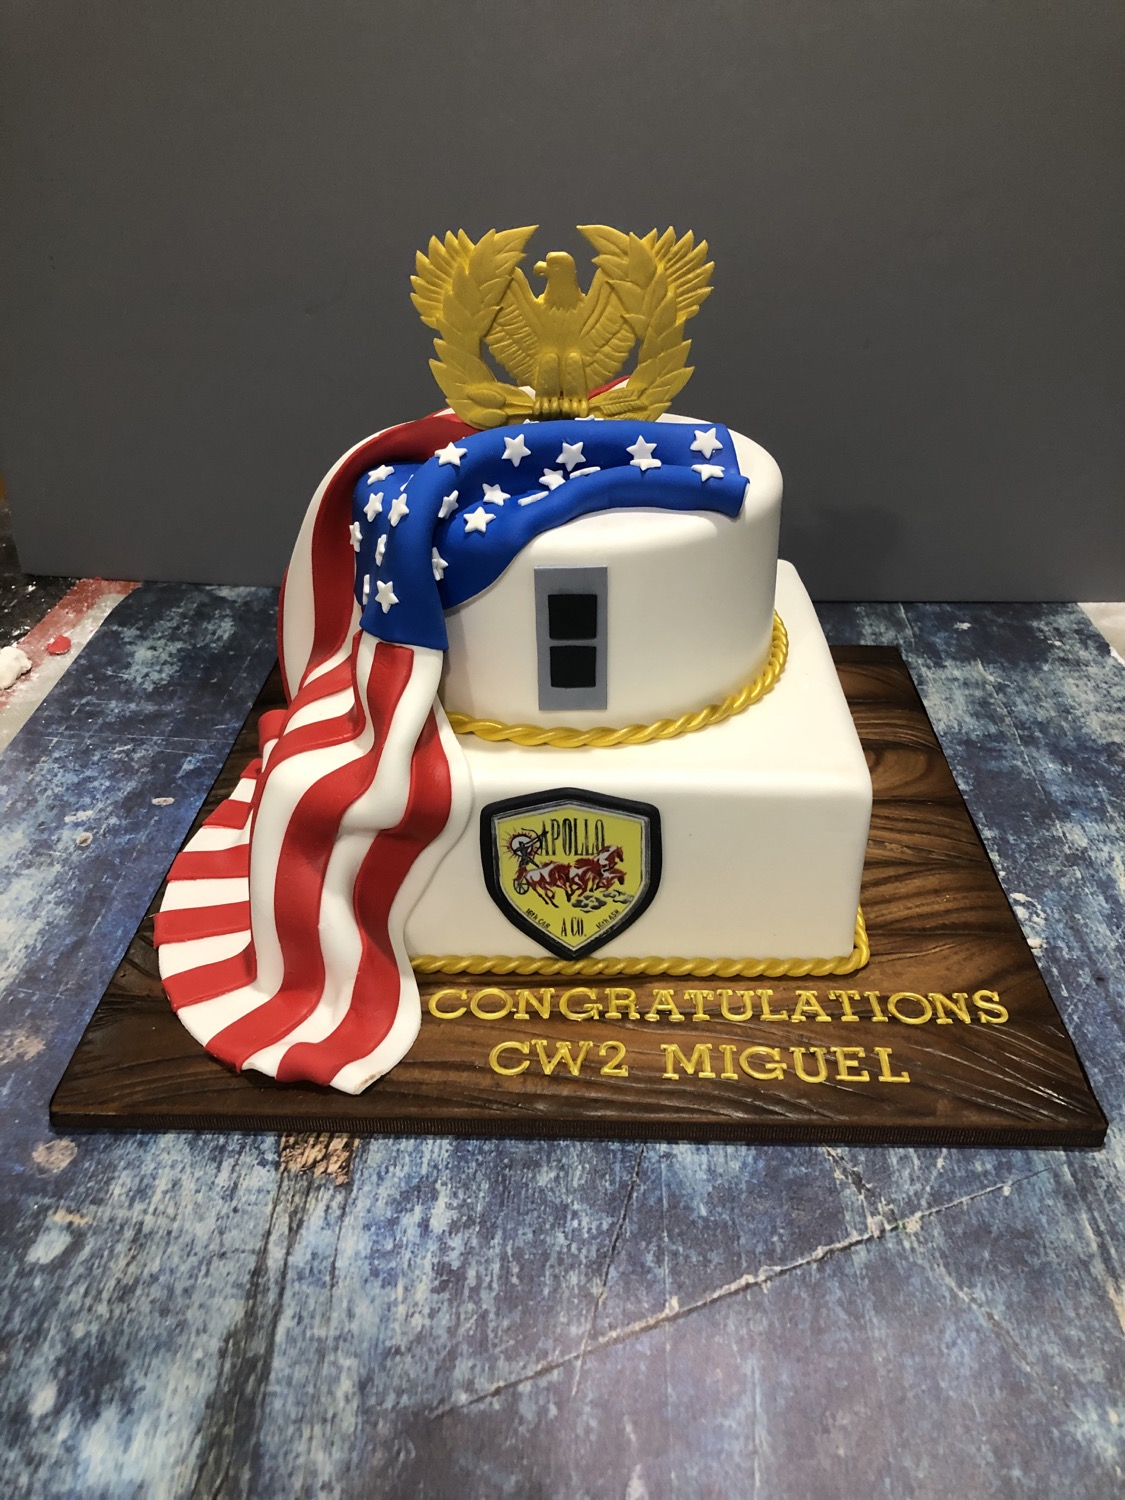 Smaller Promotion Cake